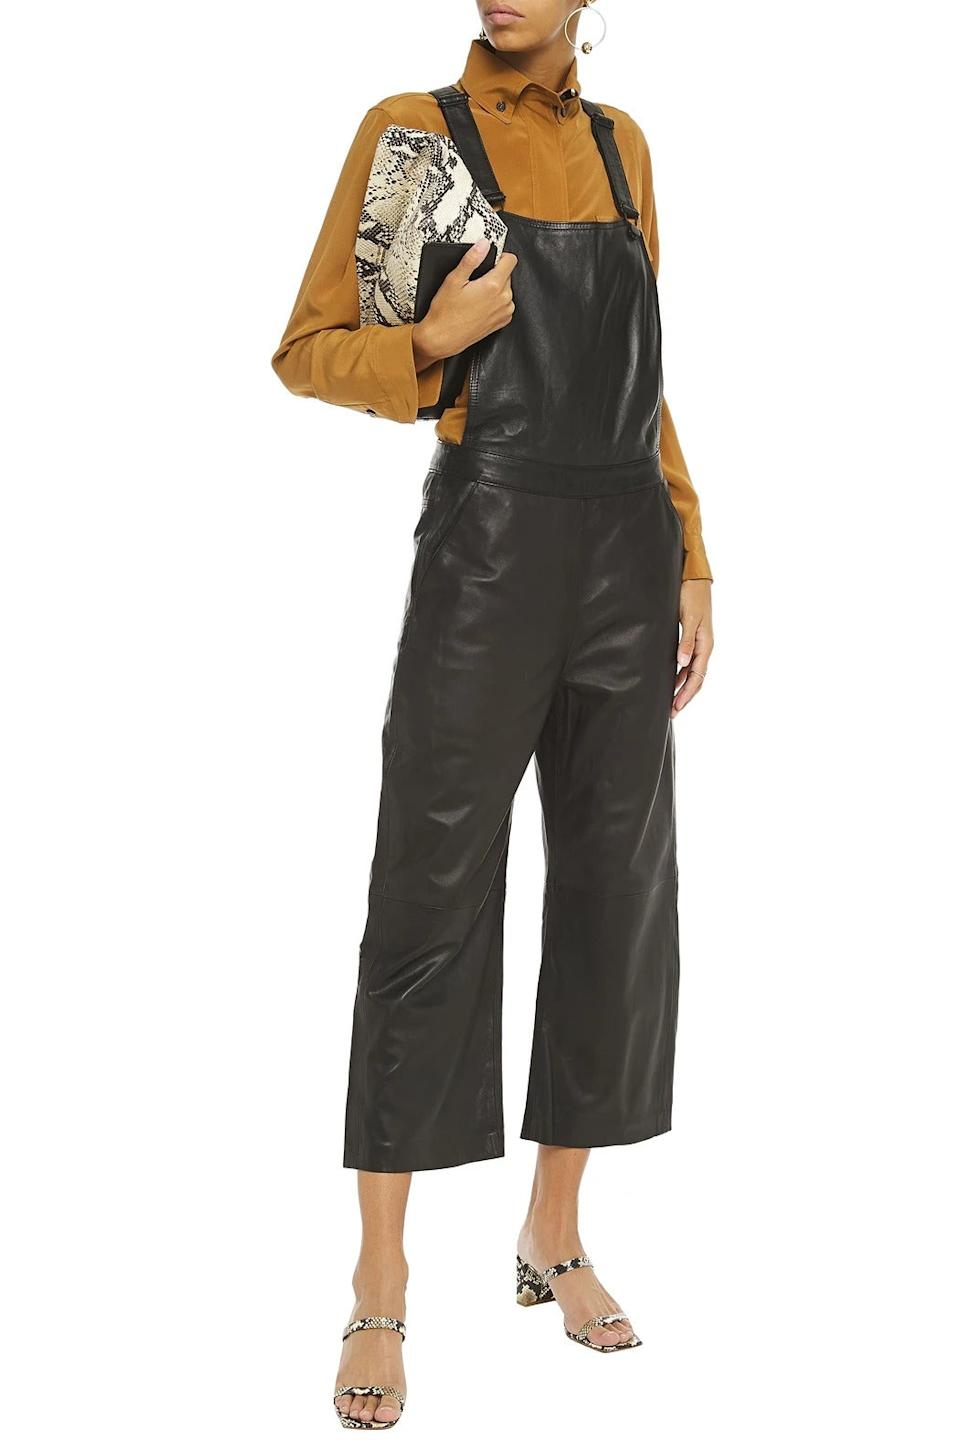 """<br><br><strong>Muubaa</strong> Dorian cropped leather overalls, $, available at <a href=""""https://go.skimresources.com/?id=30283X879131&url=https%3A%2F%2Fwww.theoutnet.com%2Fen-us%2Fshop%2Fproduct%2Fmuubaa%2Fjumpsuits%2Fcropped-jumpsuits%2Fdorian-cropped-leather-overalls%2F19971654706936862"""" rel=""""nofollow noopener"""" target=""""_blank"""" data-ylk=""""slk:The Outnet"""" class=""""link rapid-noclick-resp"""">The Outnet</a>"""